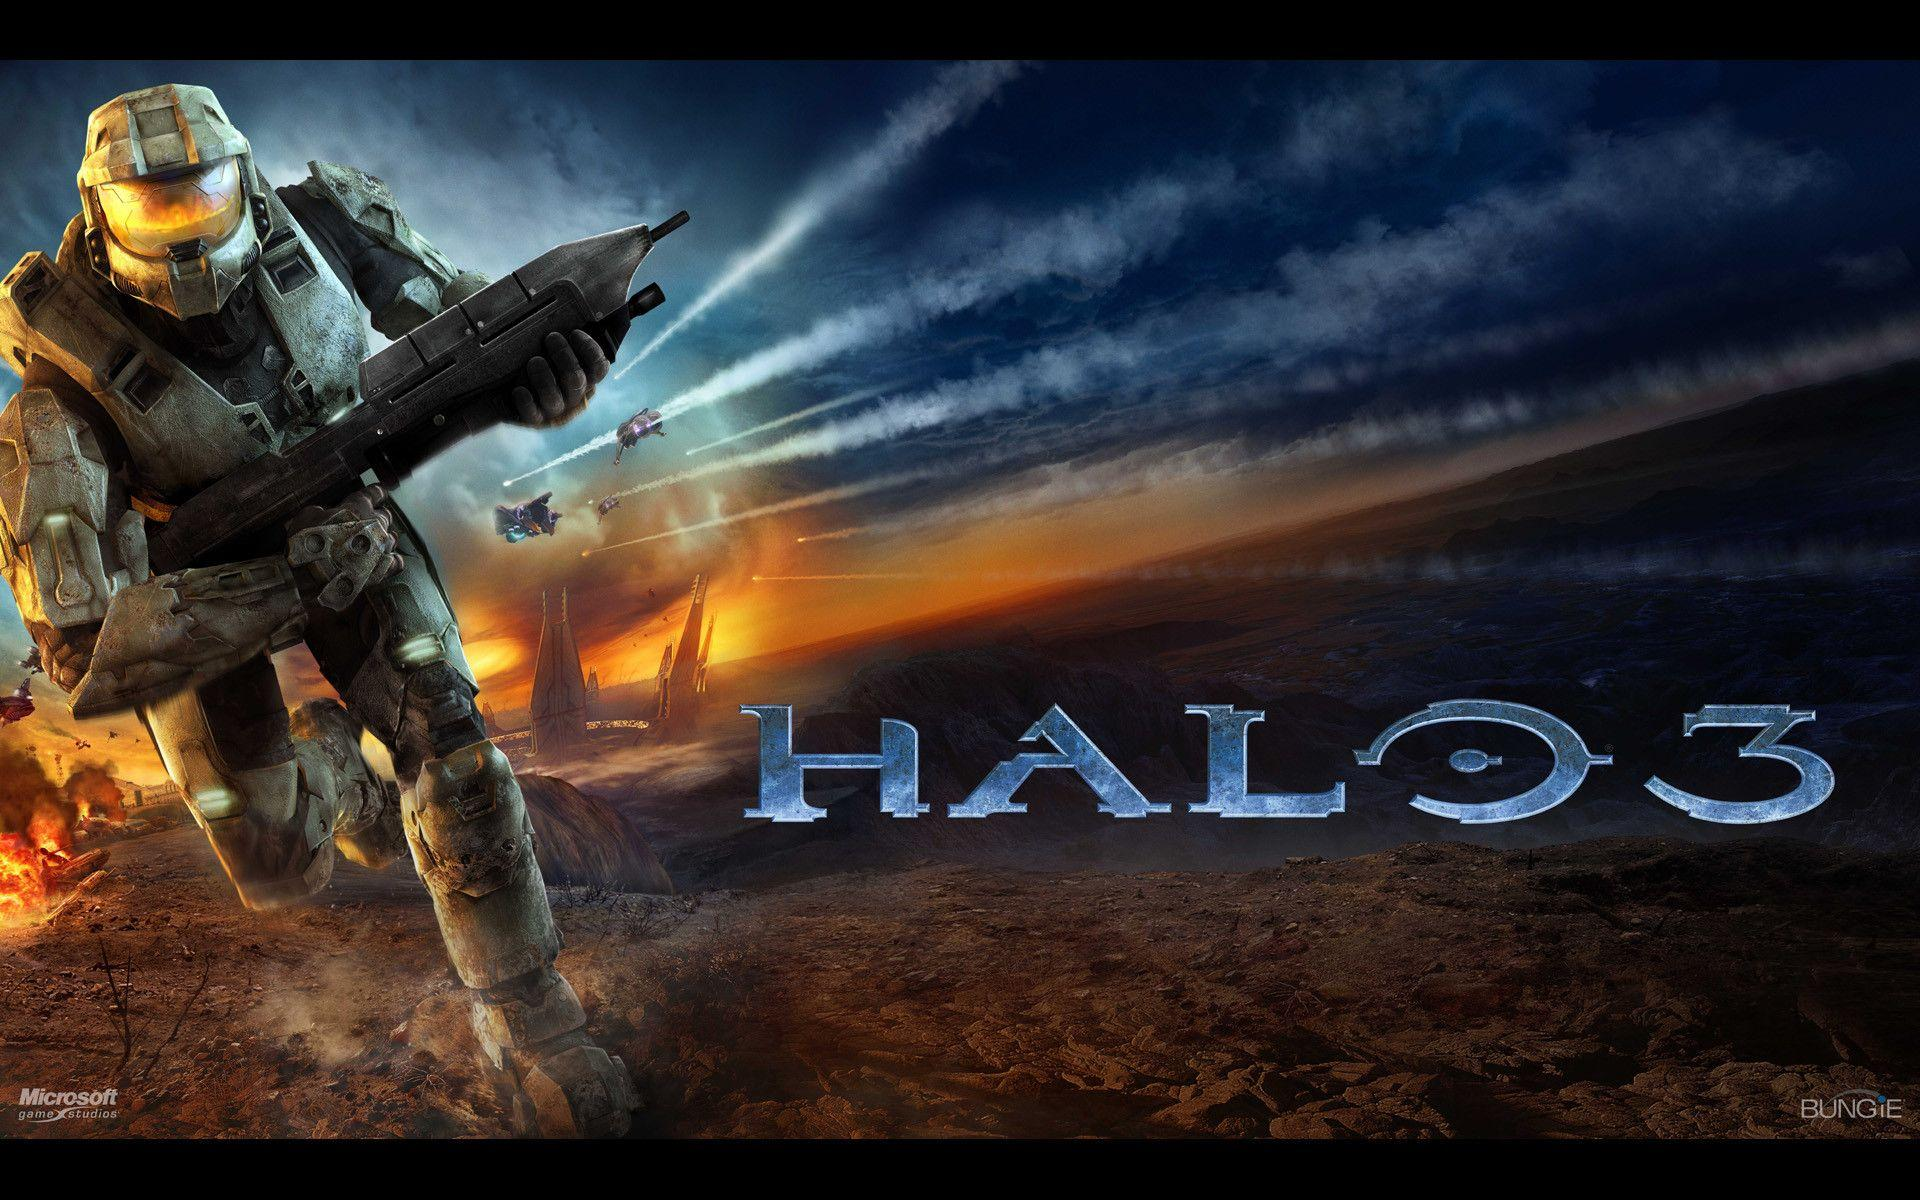 Halo 3 wallpapers wallpaper cave for Wallpaper three